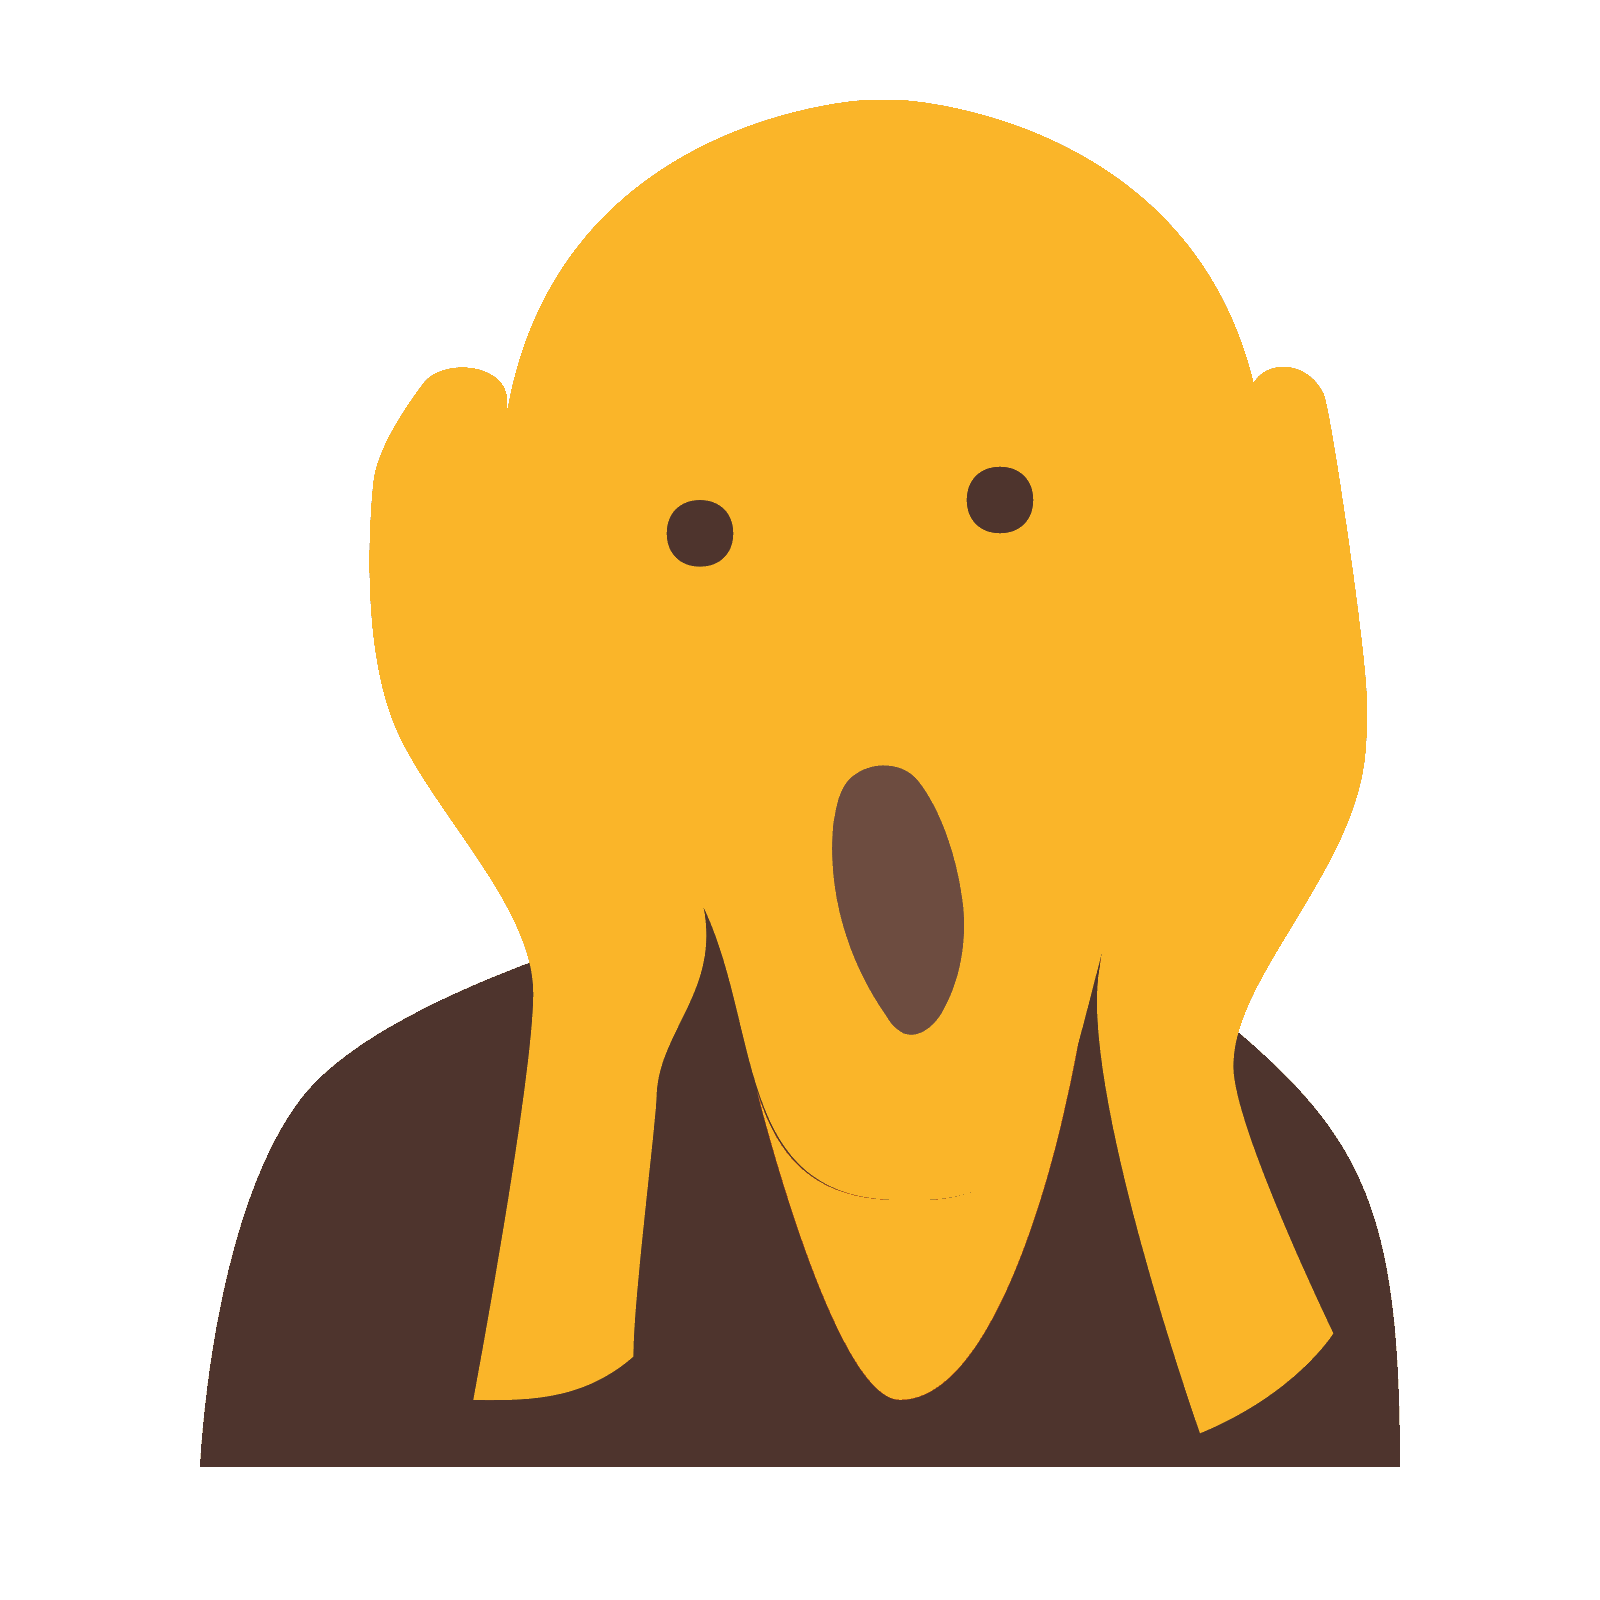 Ic ne edvard munch. Clipart mouth hand over